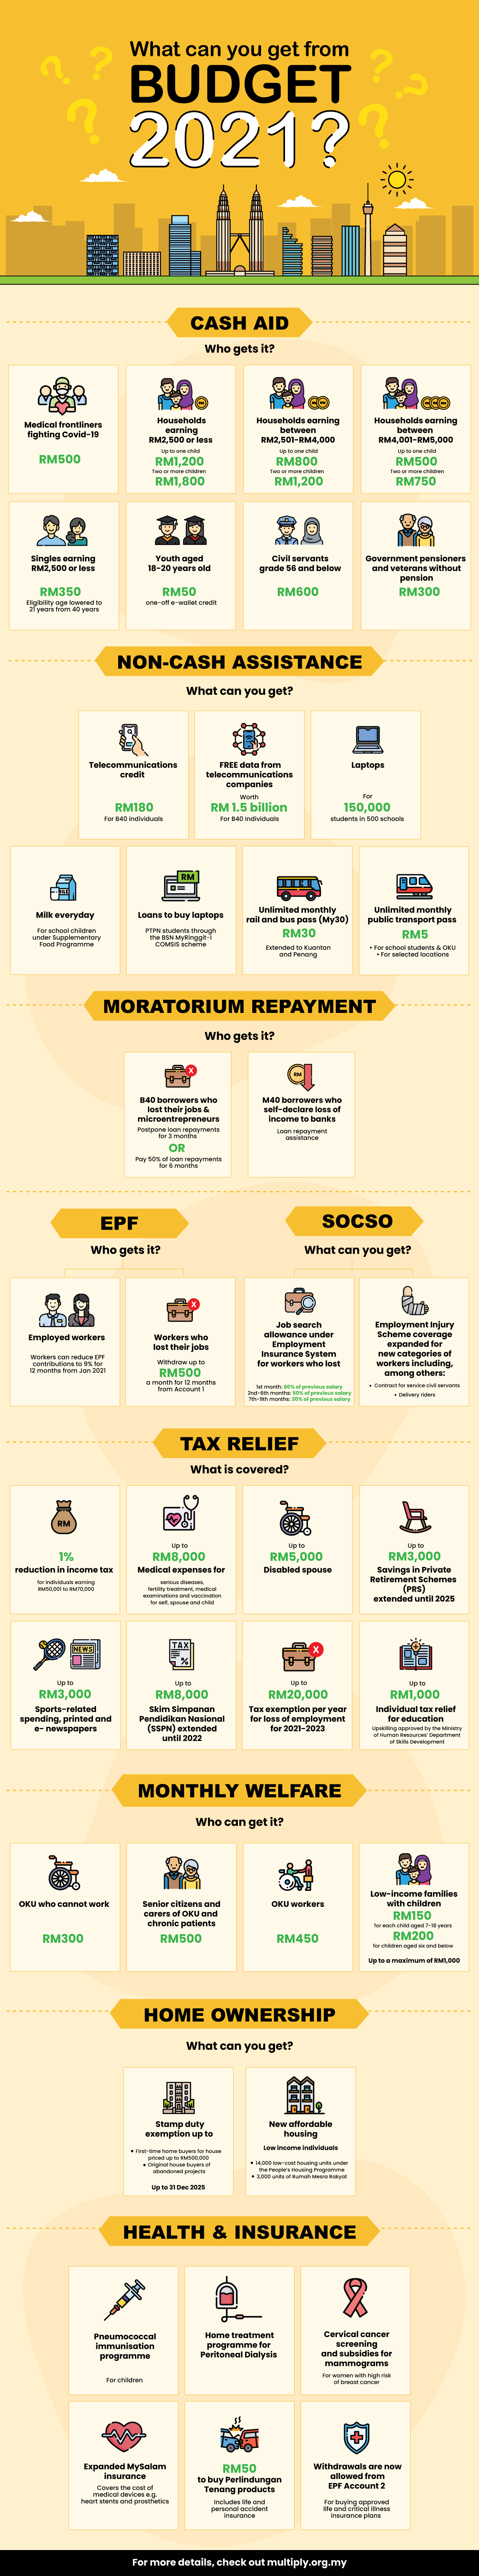 What Can You Get from Budget 2021? 3 - Multiply - Planning & Budgeting